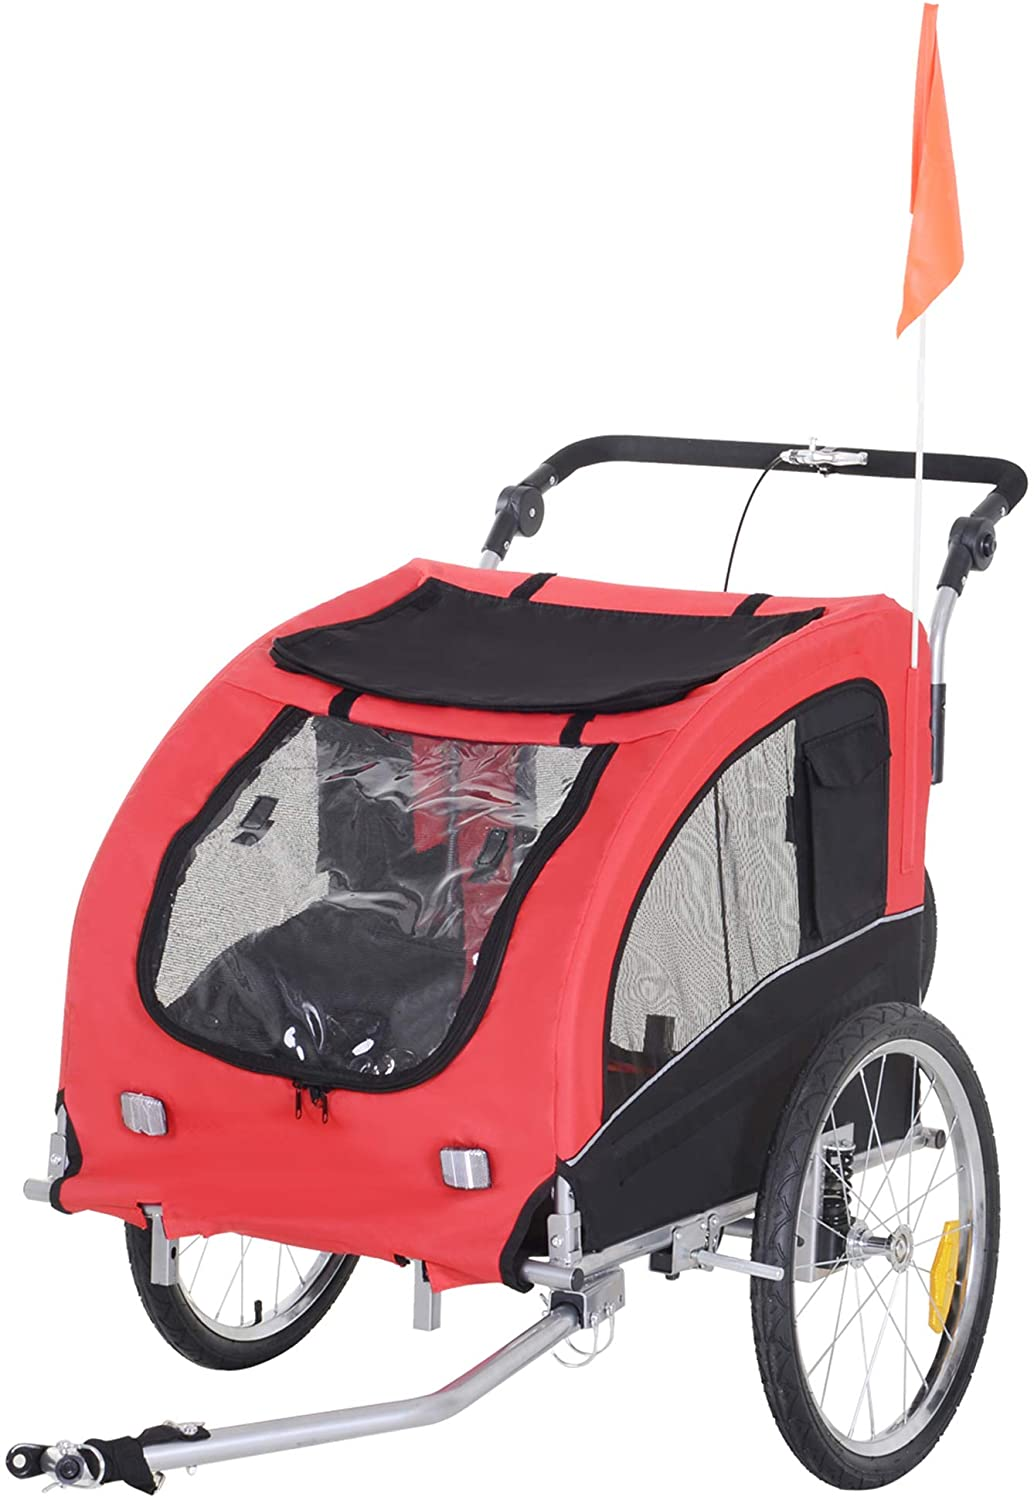 Tripawd dog stroller with suspension